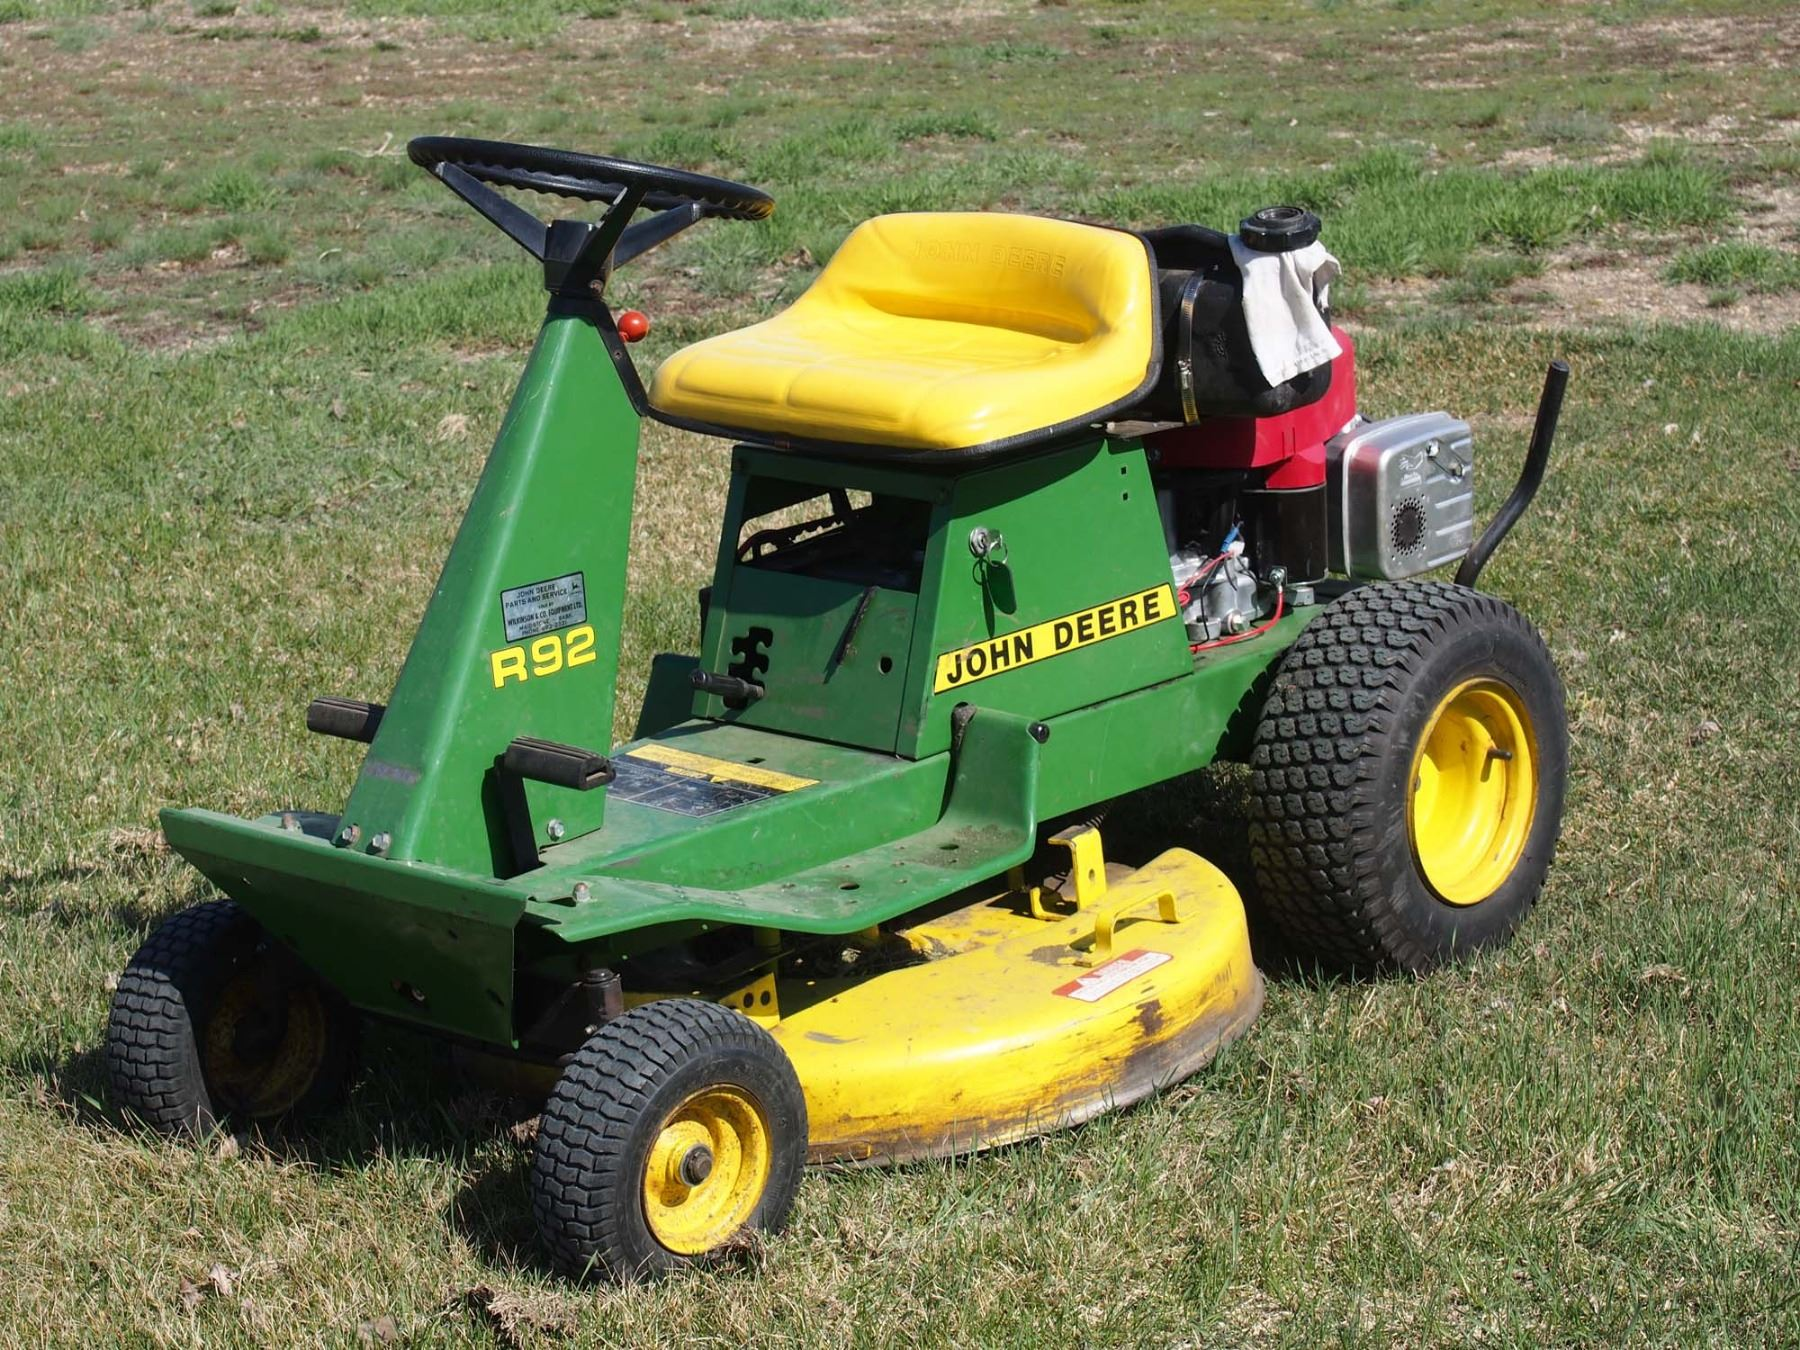 hight resolution of image 1 john deere r92 riding lawn mower 10 1 2 hp